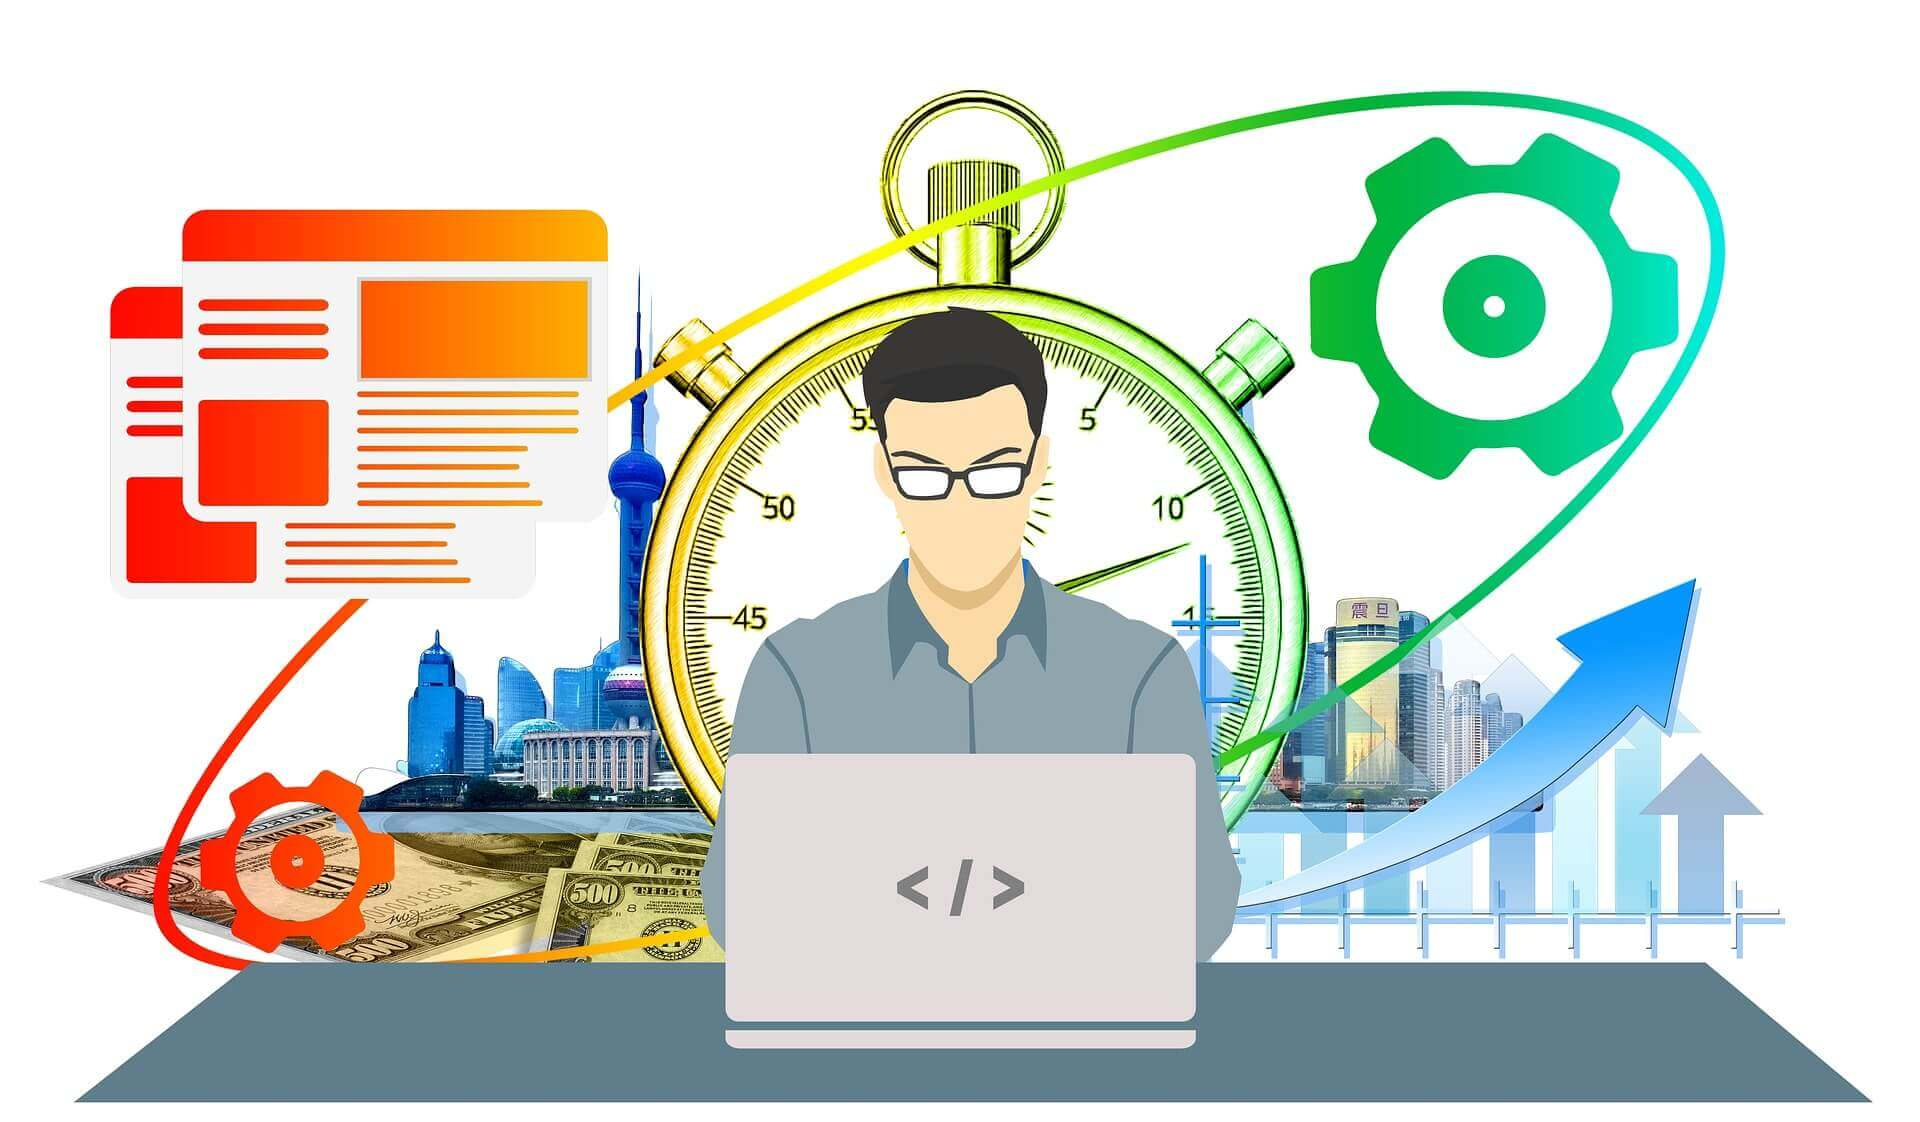 An illustration where a freelancer is working on his laptop, having symbols of tools, clock, growth, and money in the backdrop